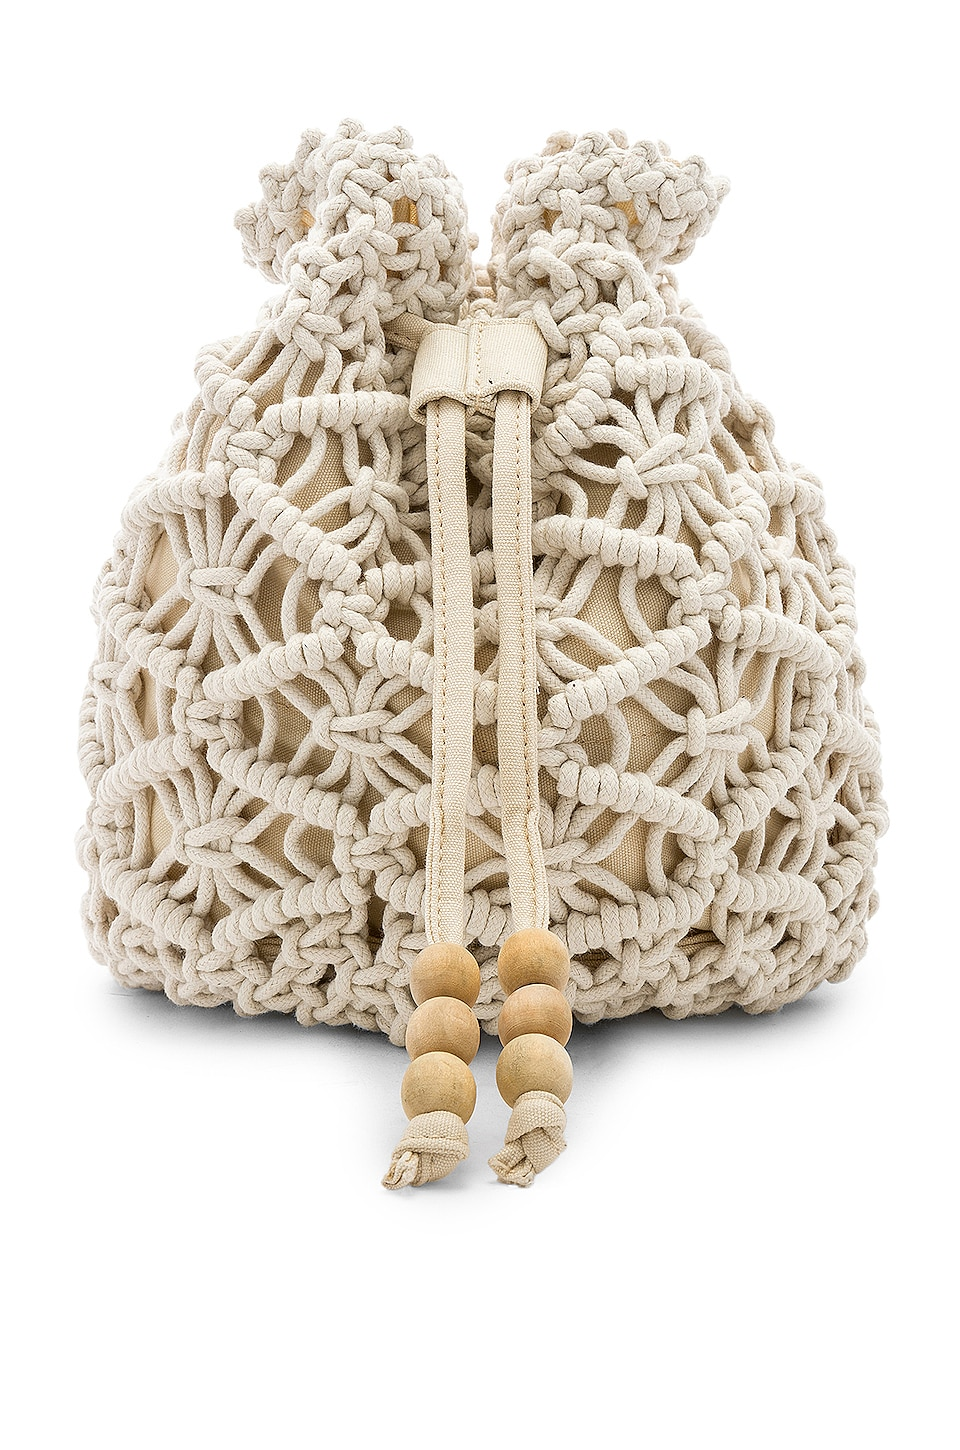 House of Harlow 1960 x REVOLVE Maison Mini Backpack in Ivory